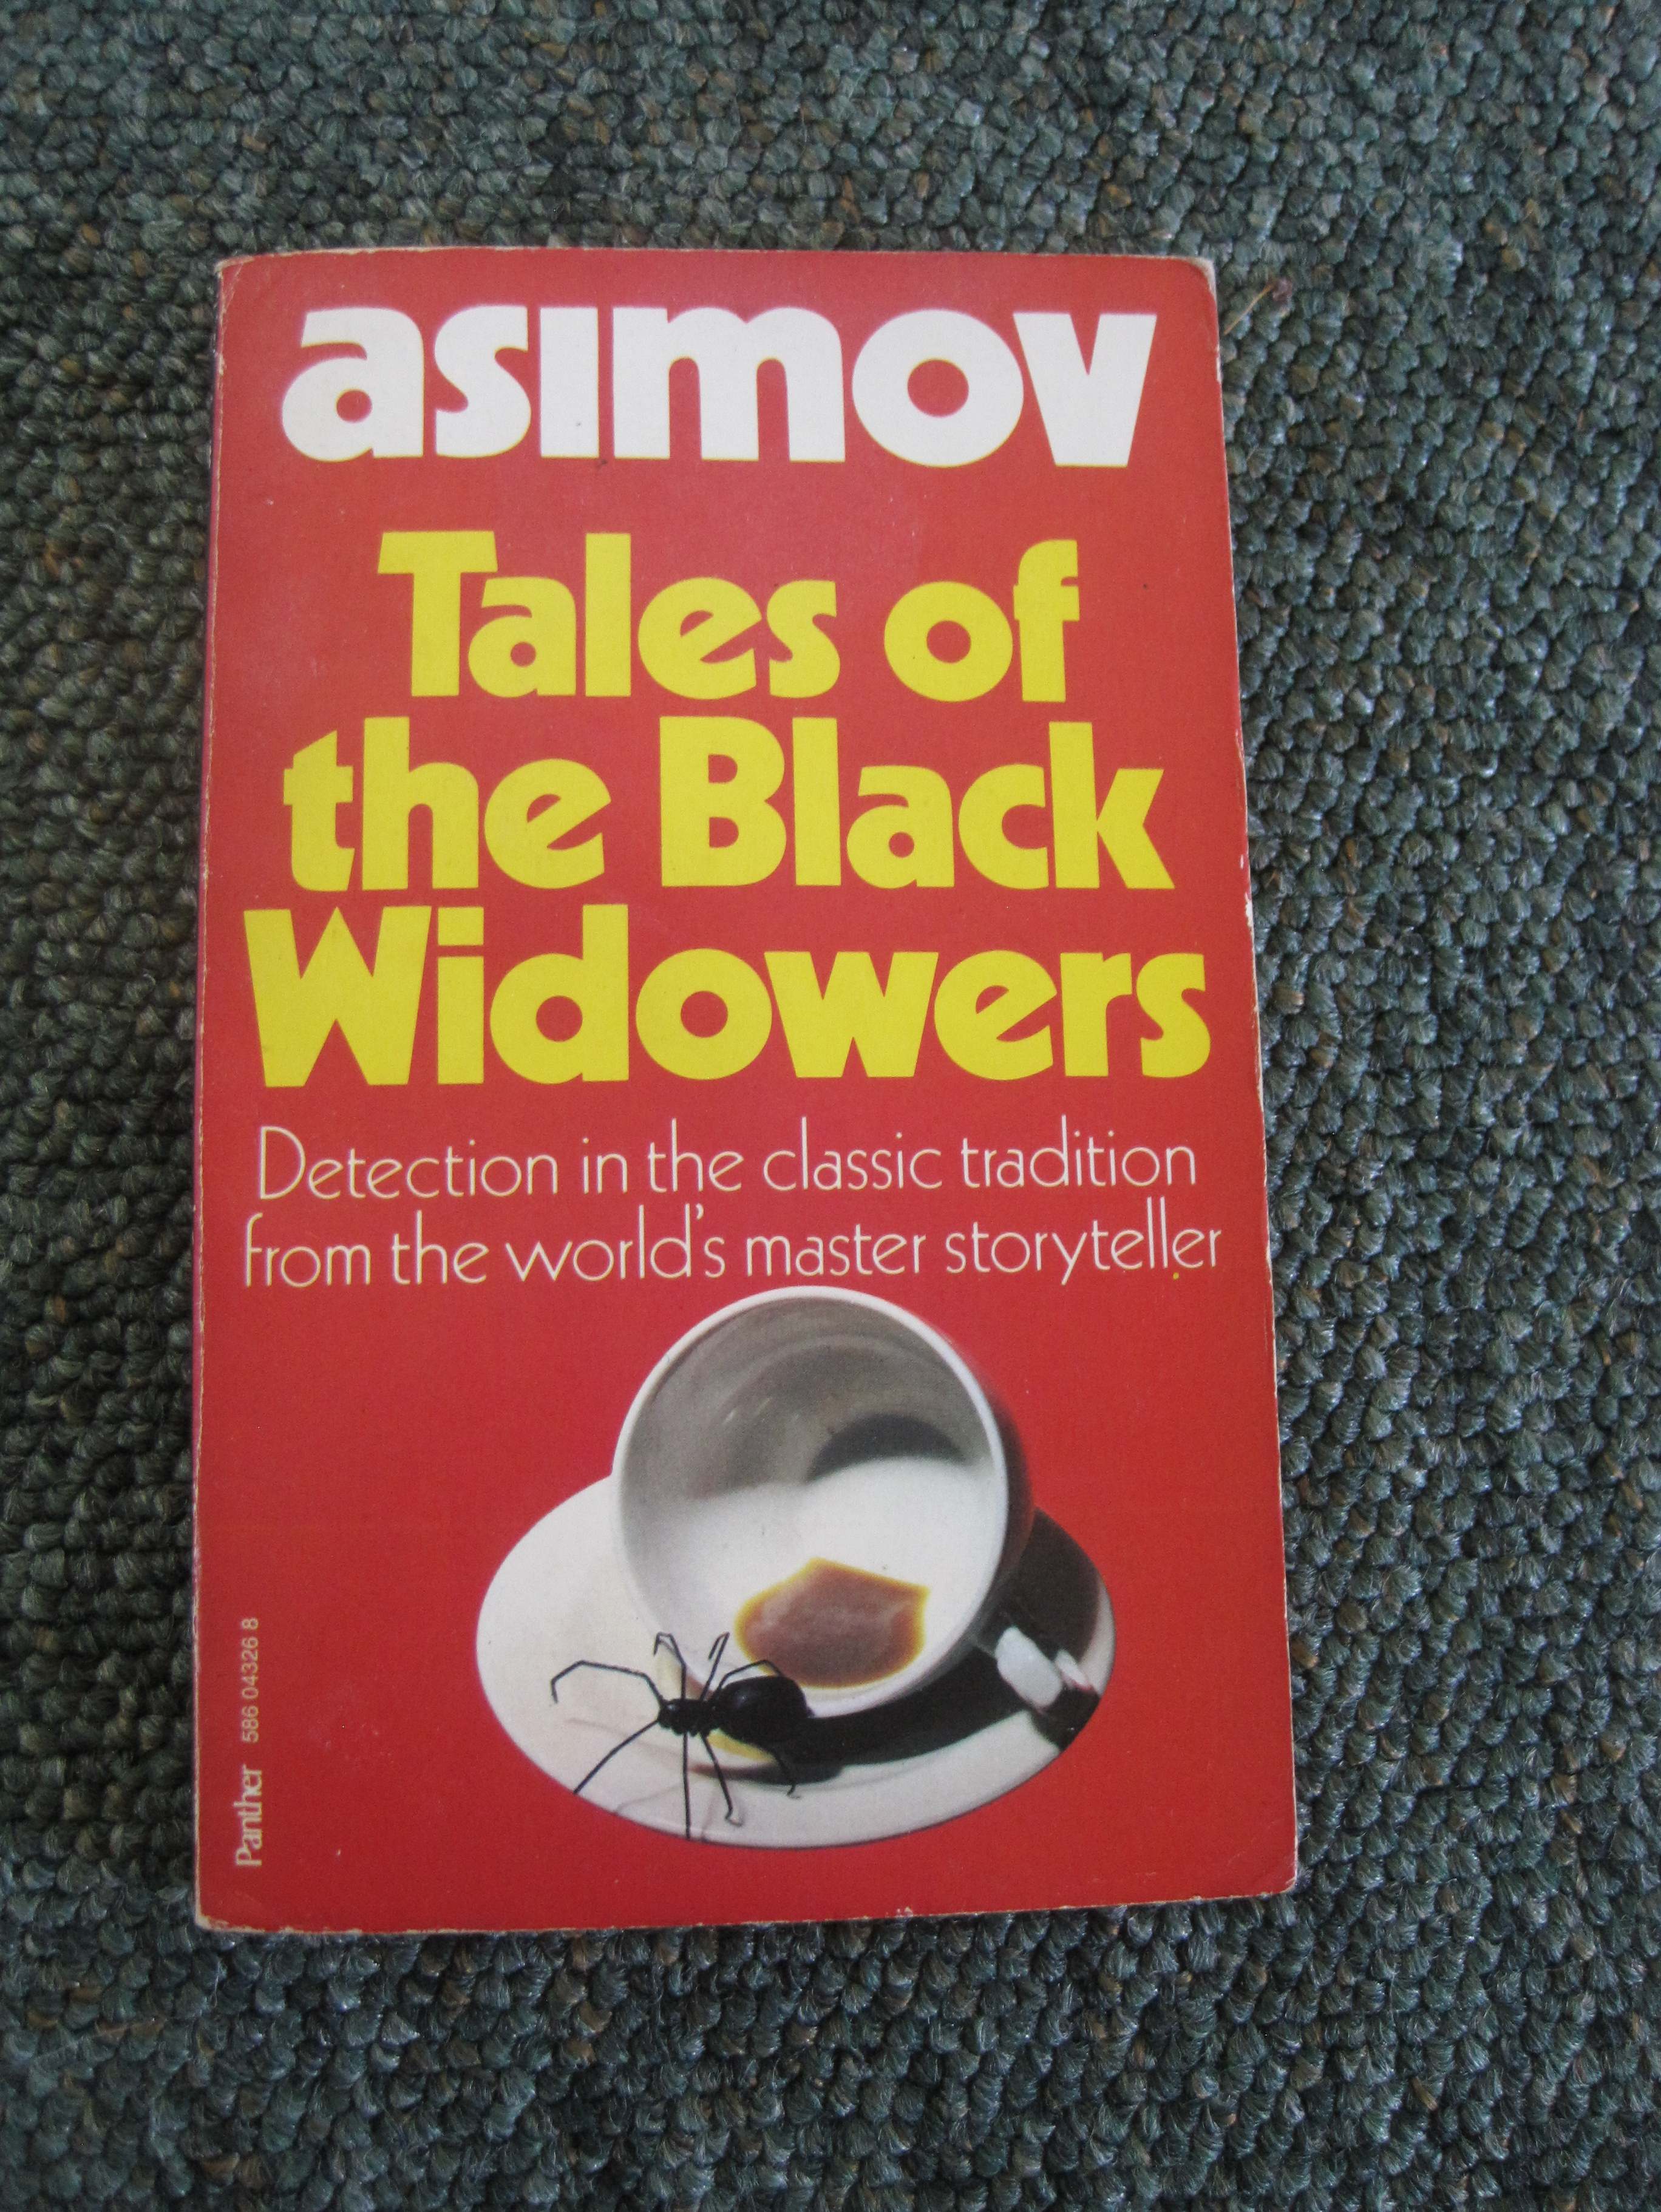 Tales of the Black Widowers - photo by Juliamaud